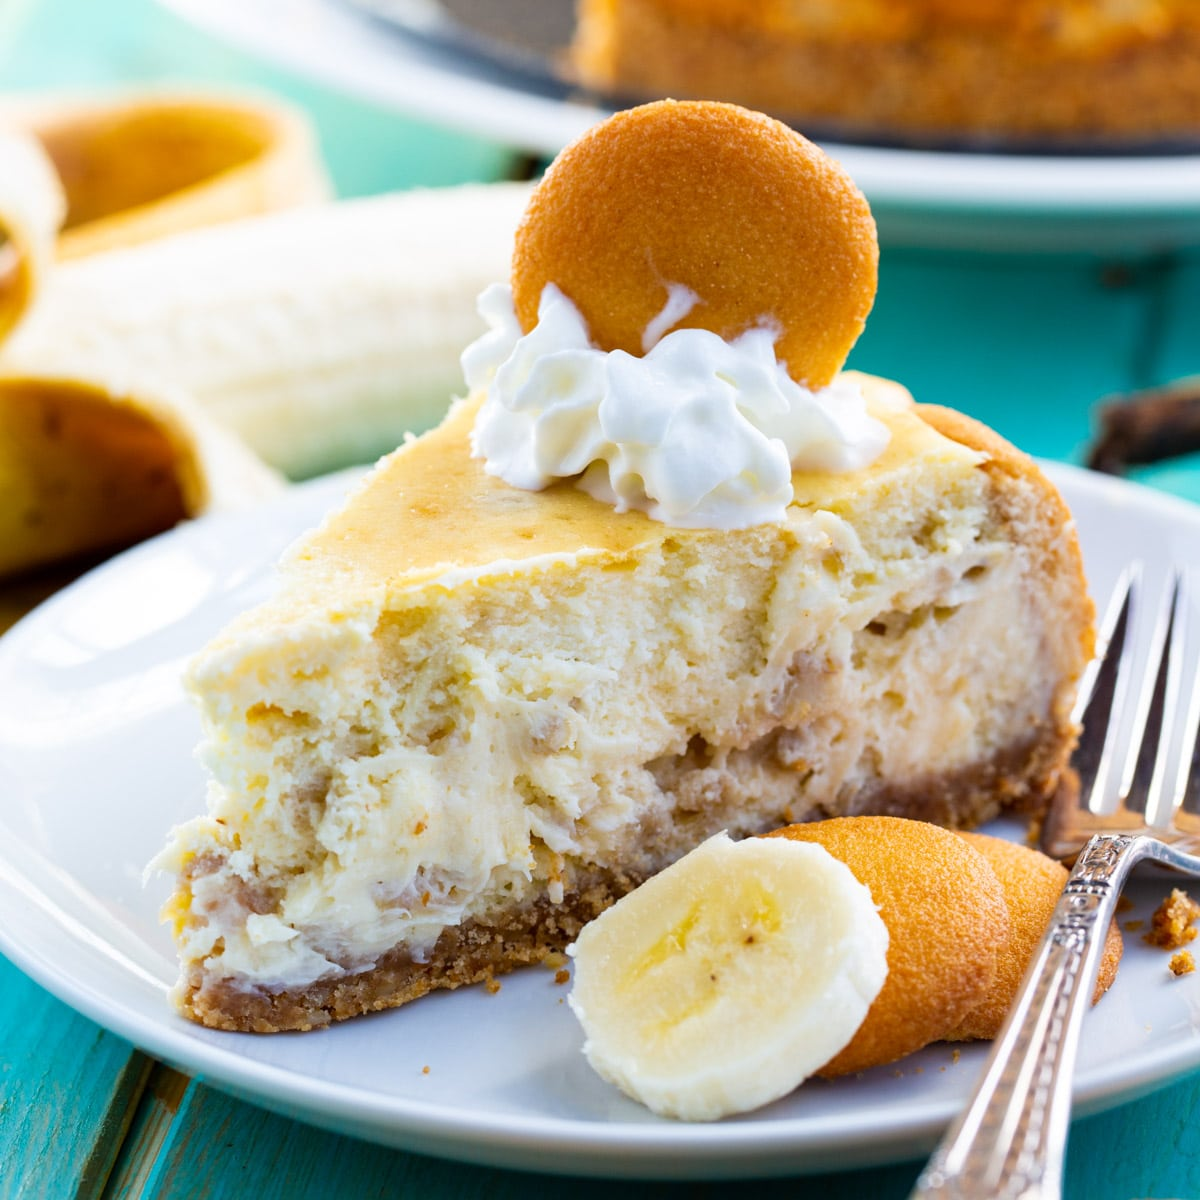 Slice of Banana Pudding Cheesecake topped with whipped cream and a vanilla wafer.